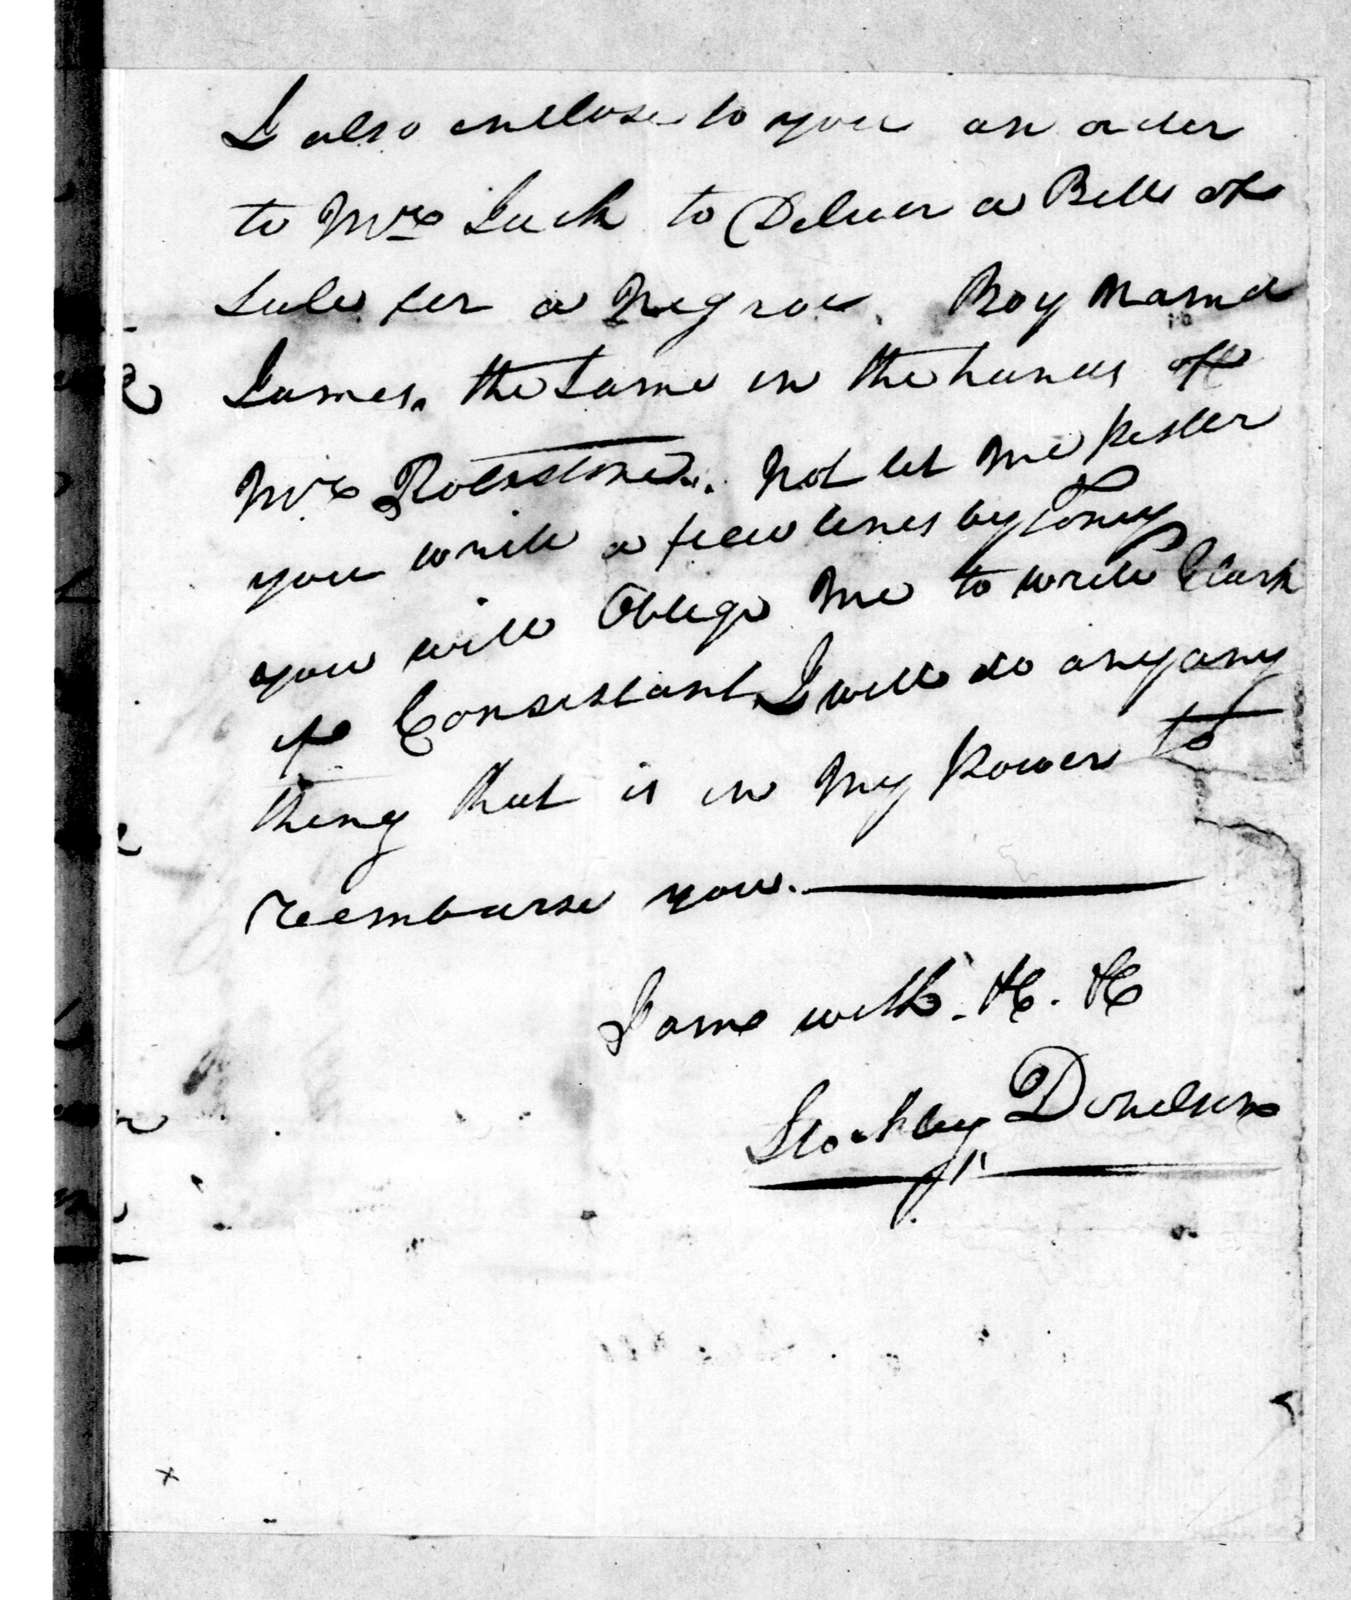 Stockley Donelson to Andrew Jackson, March 26, 1802